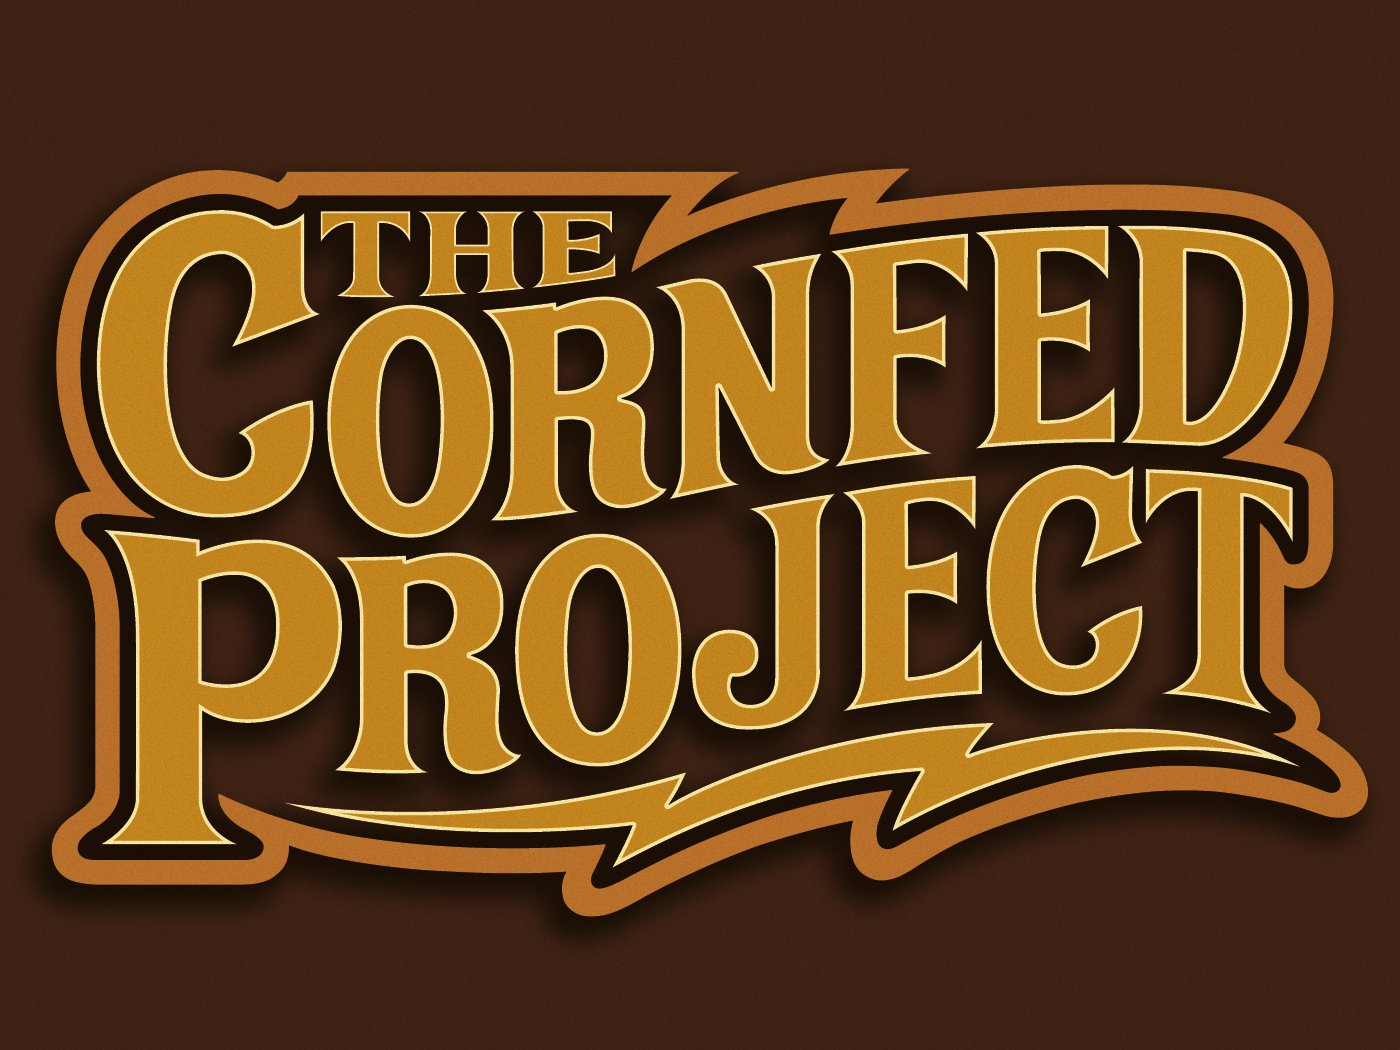 Image for The Cornfed Project